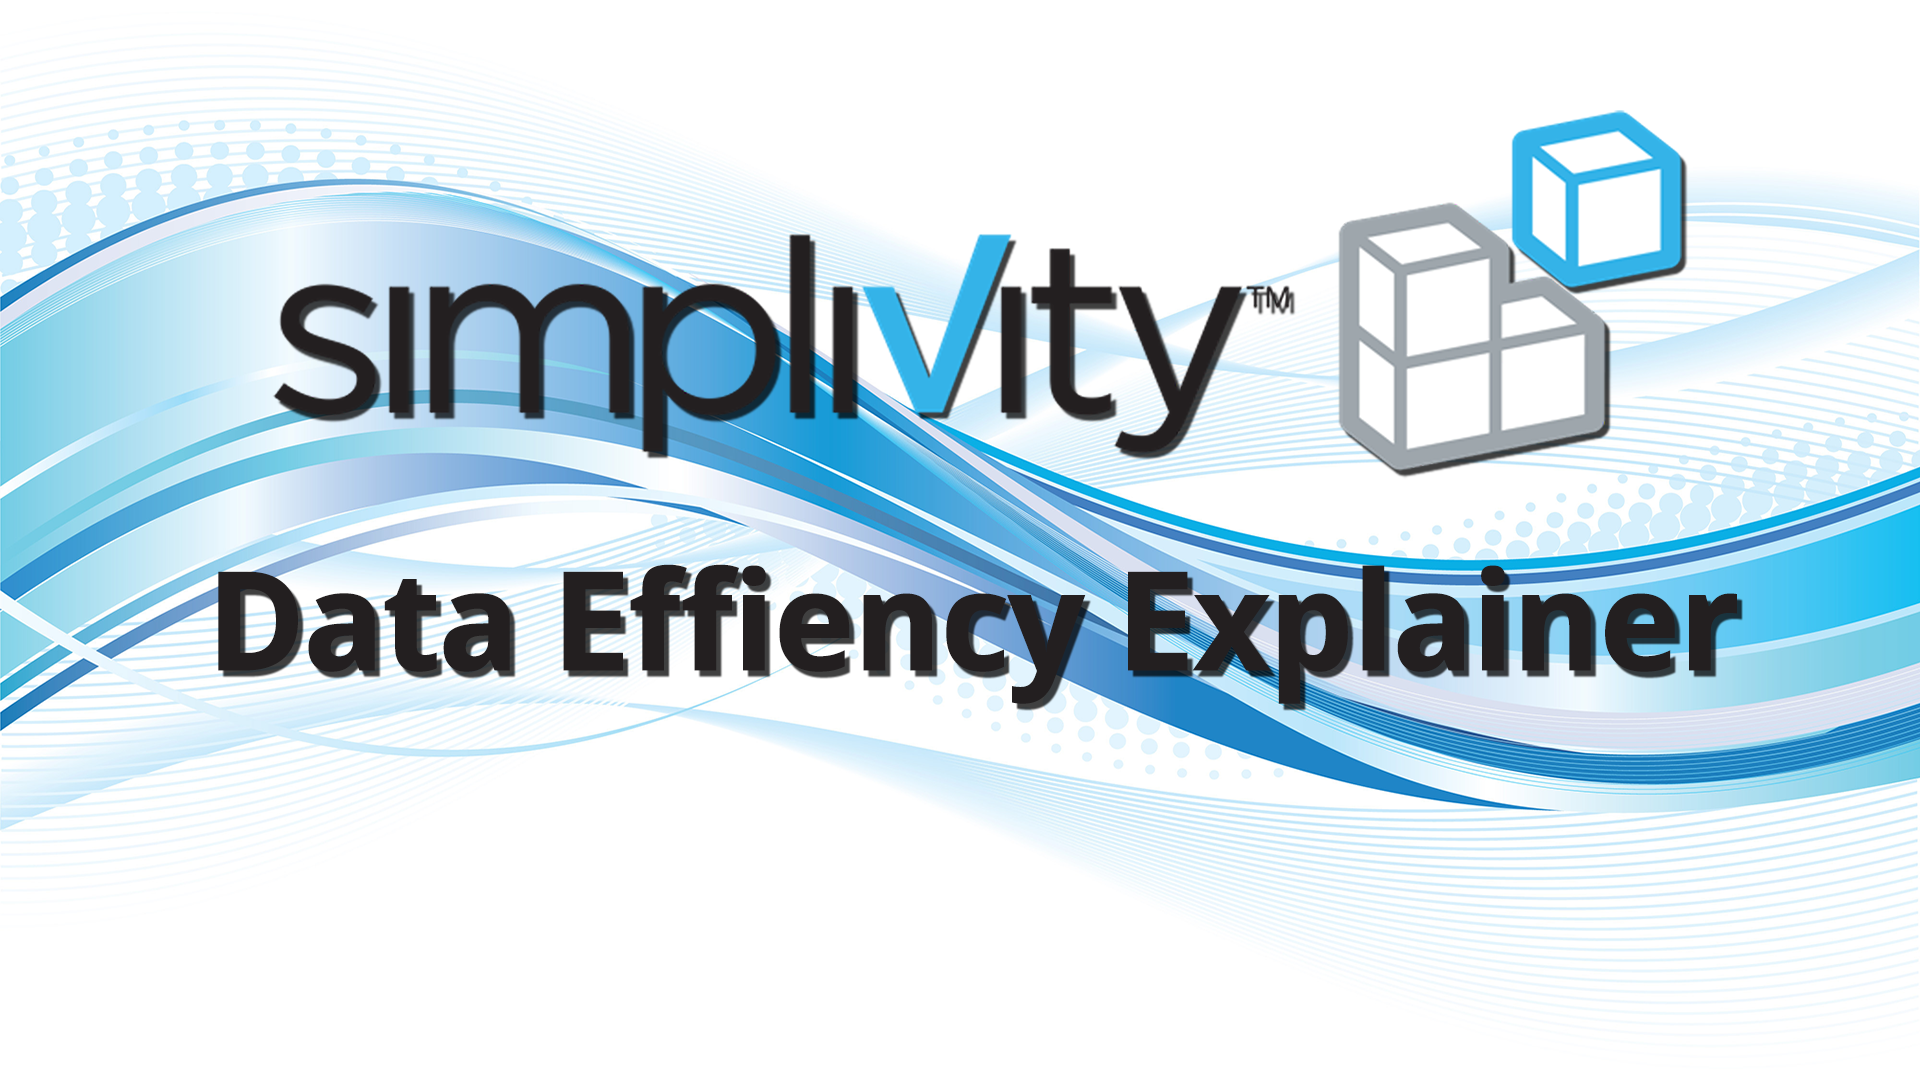 SimpliVity Data Efficiency Explainer